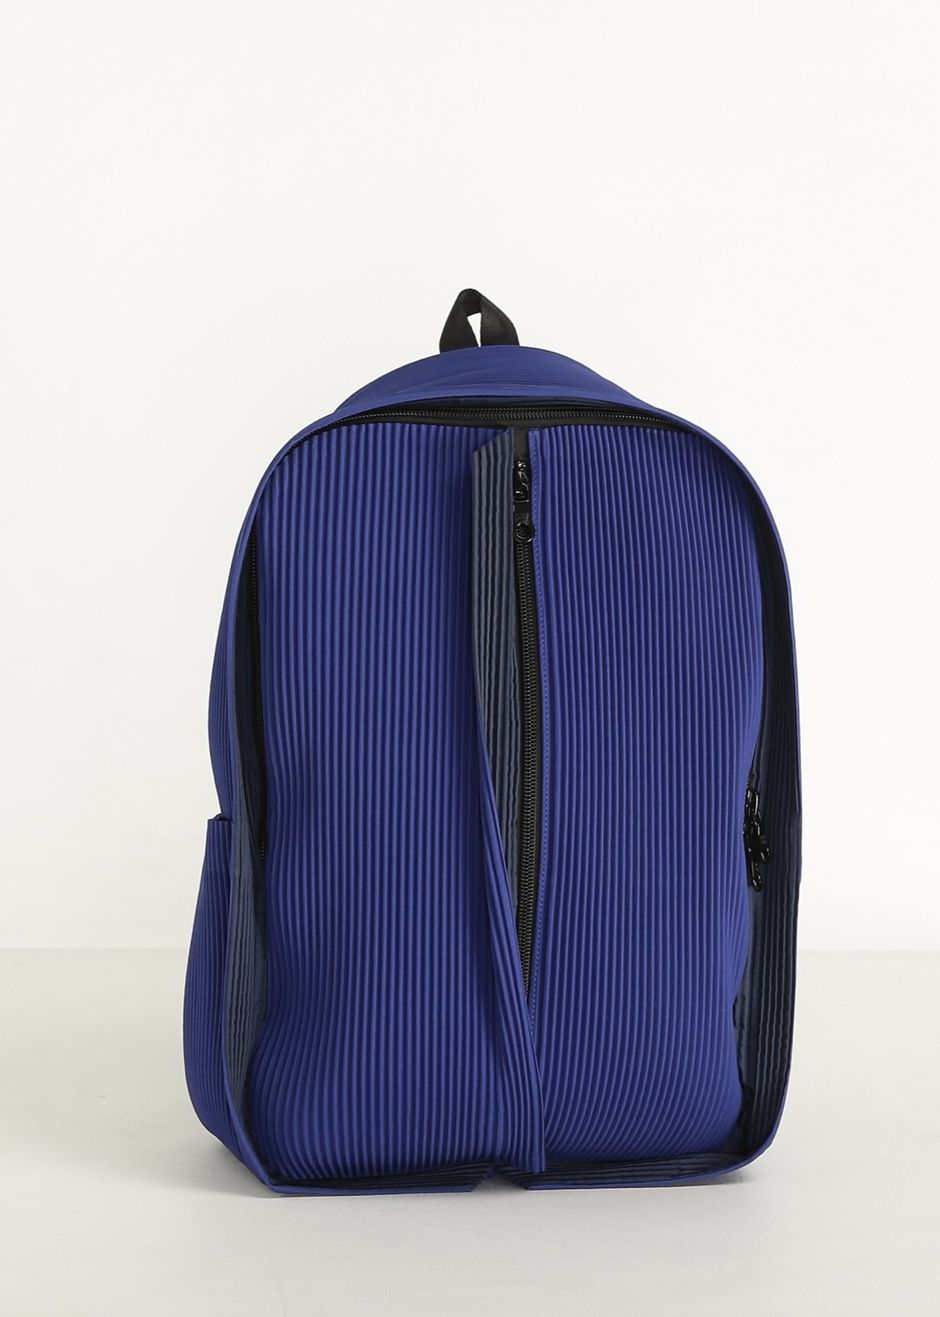 8289829ba8 Issey Miyake PLEATS PLEASE Pleats Backpack (Blue)